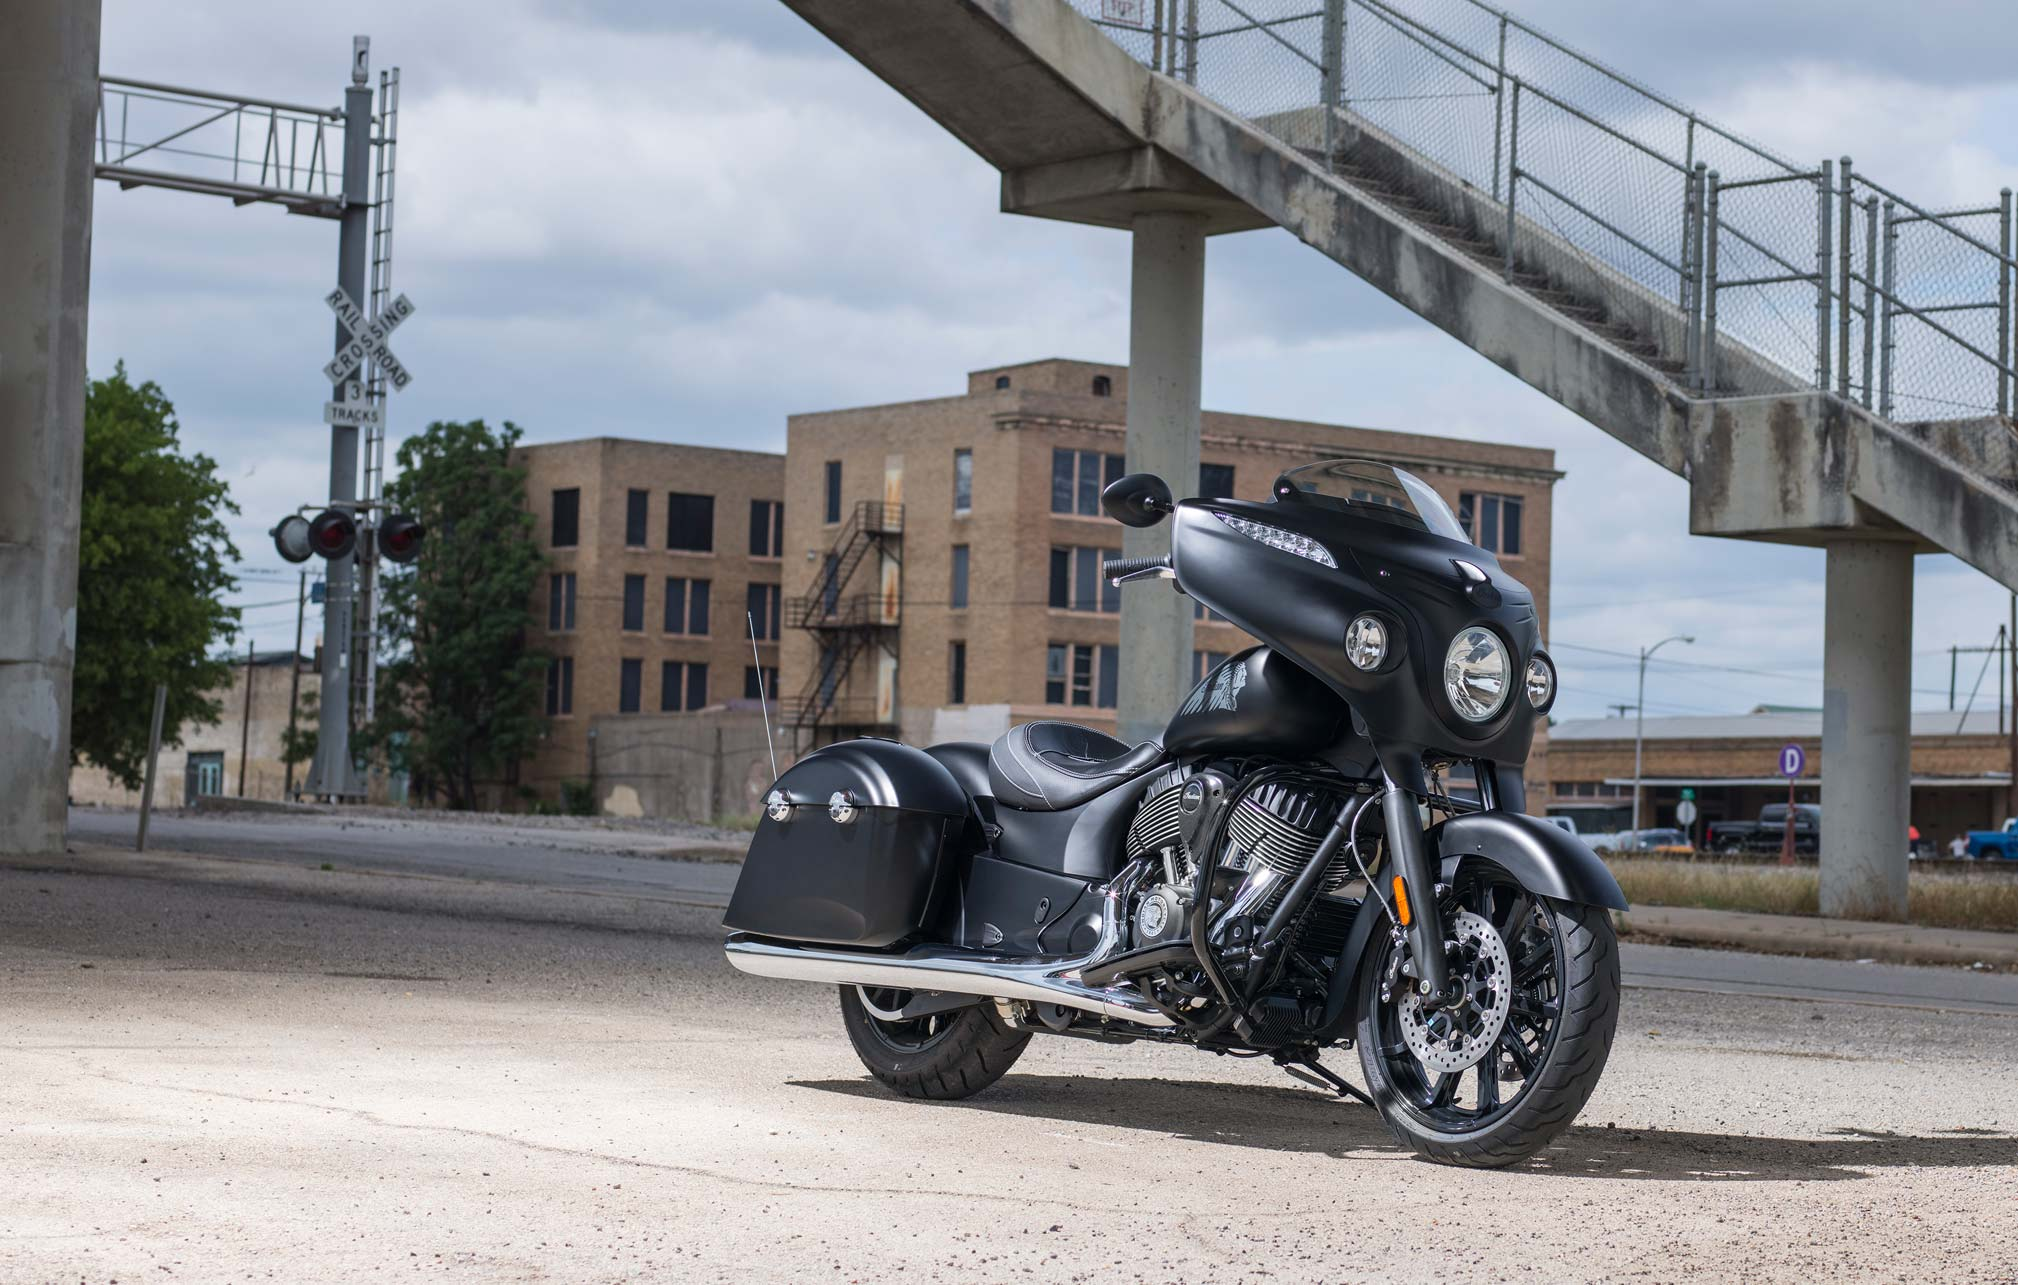 10 Indian Chieftain Dark Horse Review • Total Motorcycle